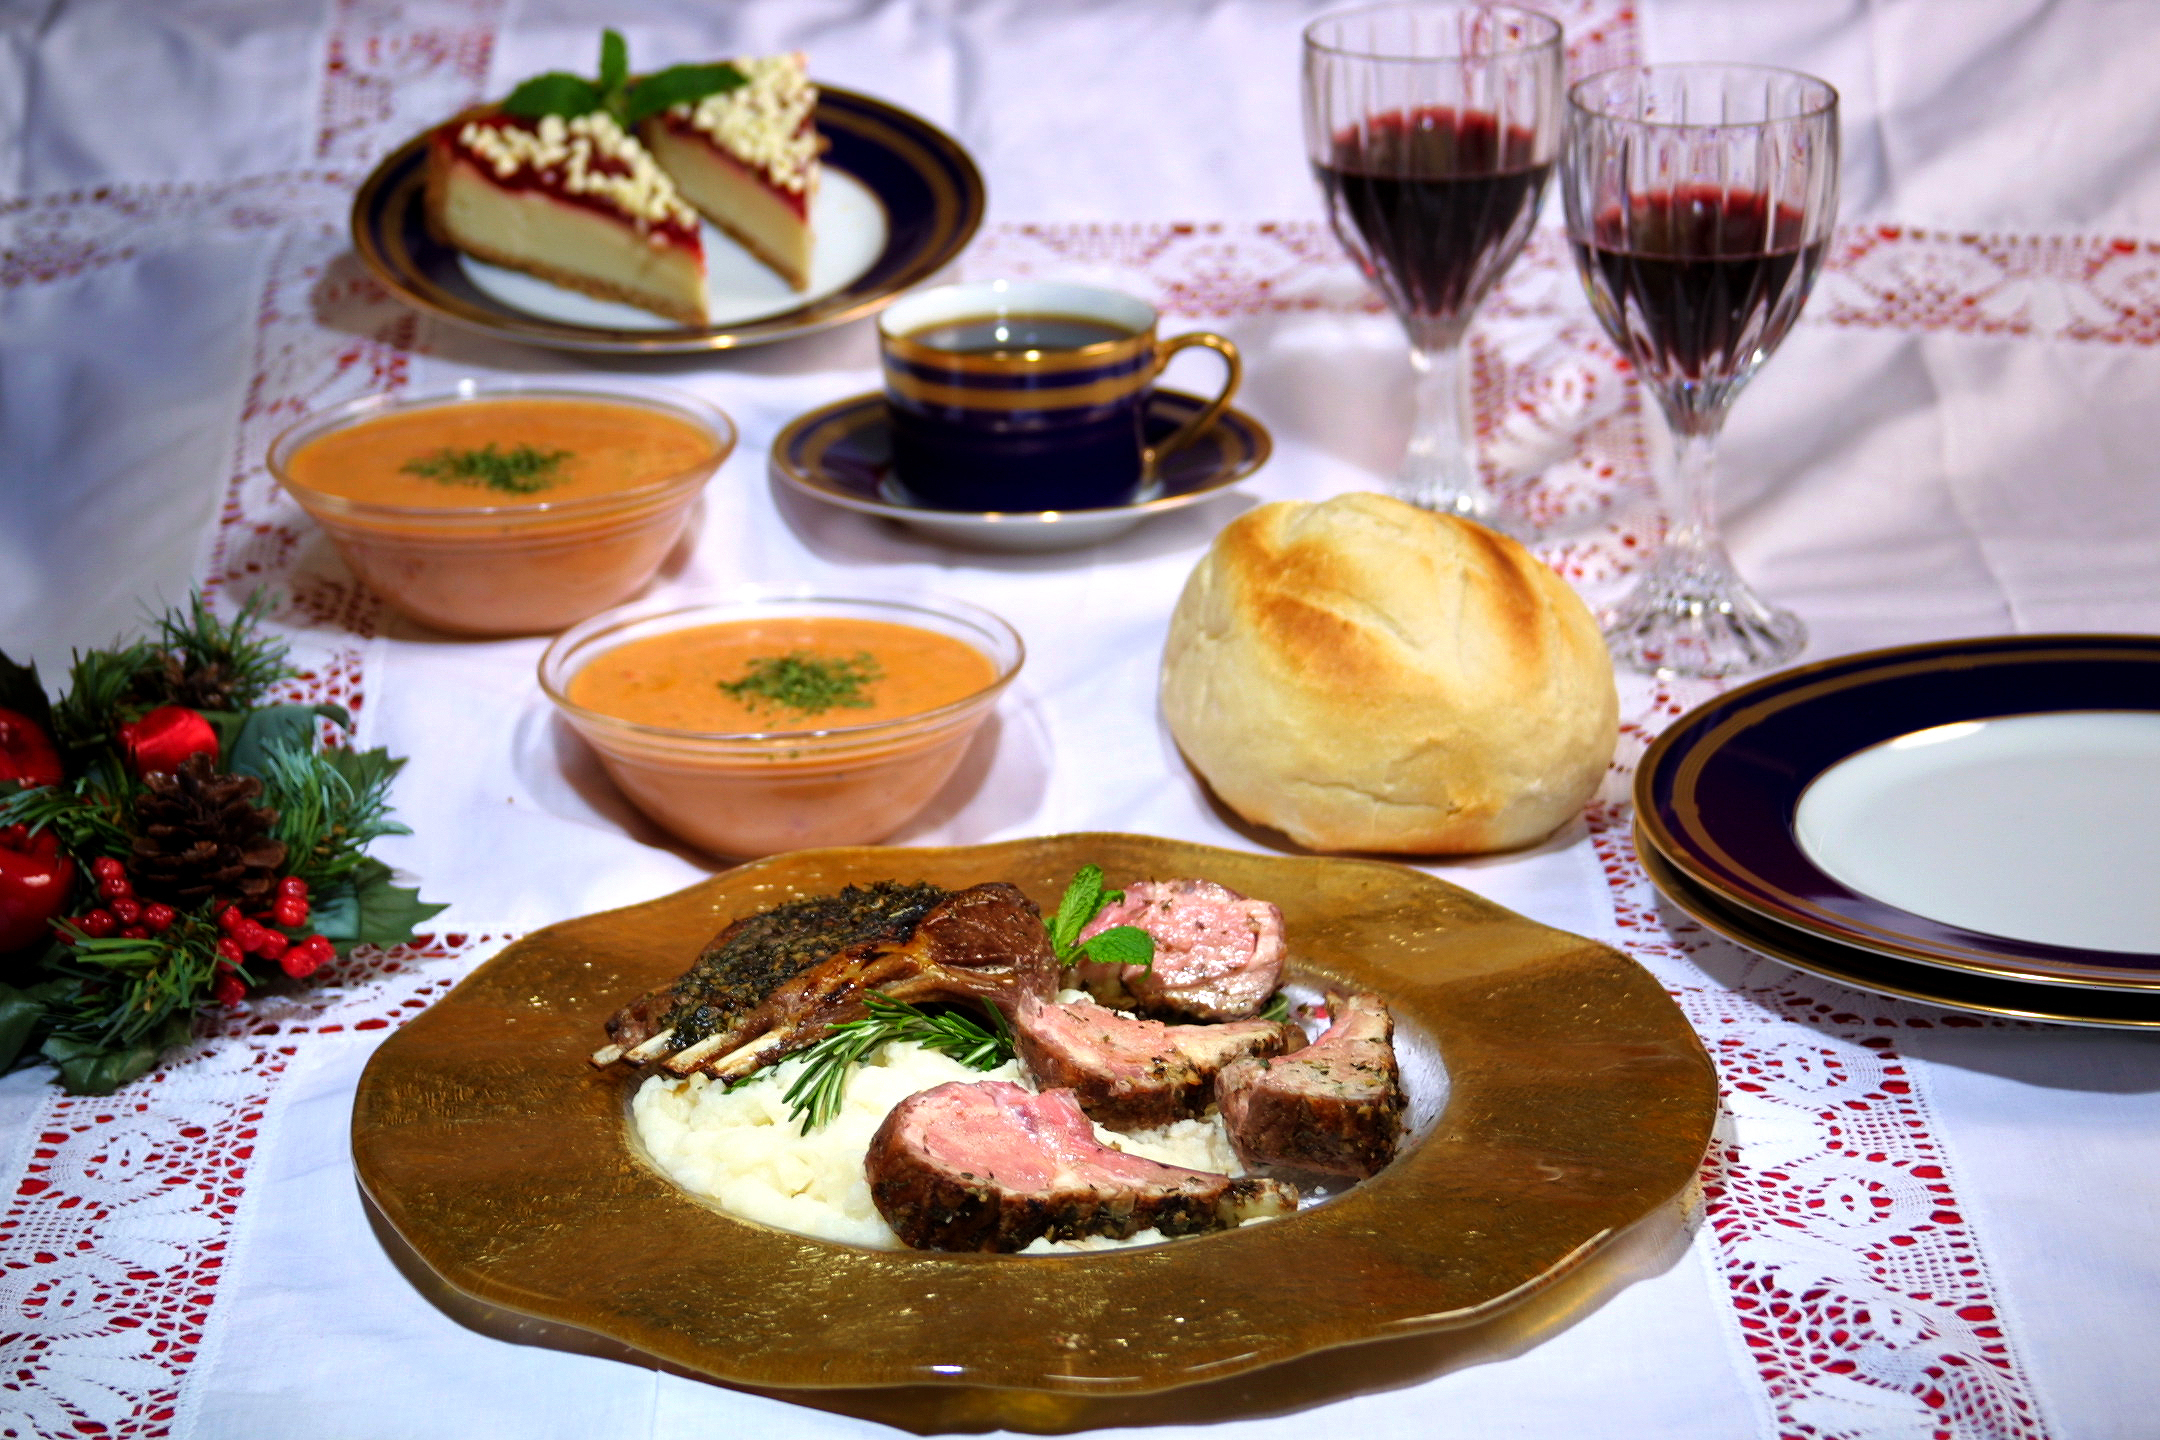 GourmetStation, Provider of Upscale Gourmet Food Gifts and Gourmet ...